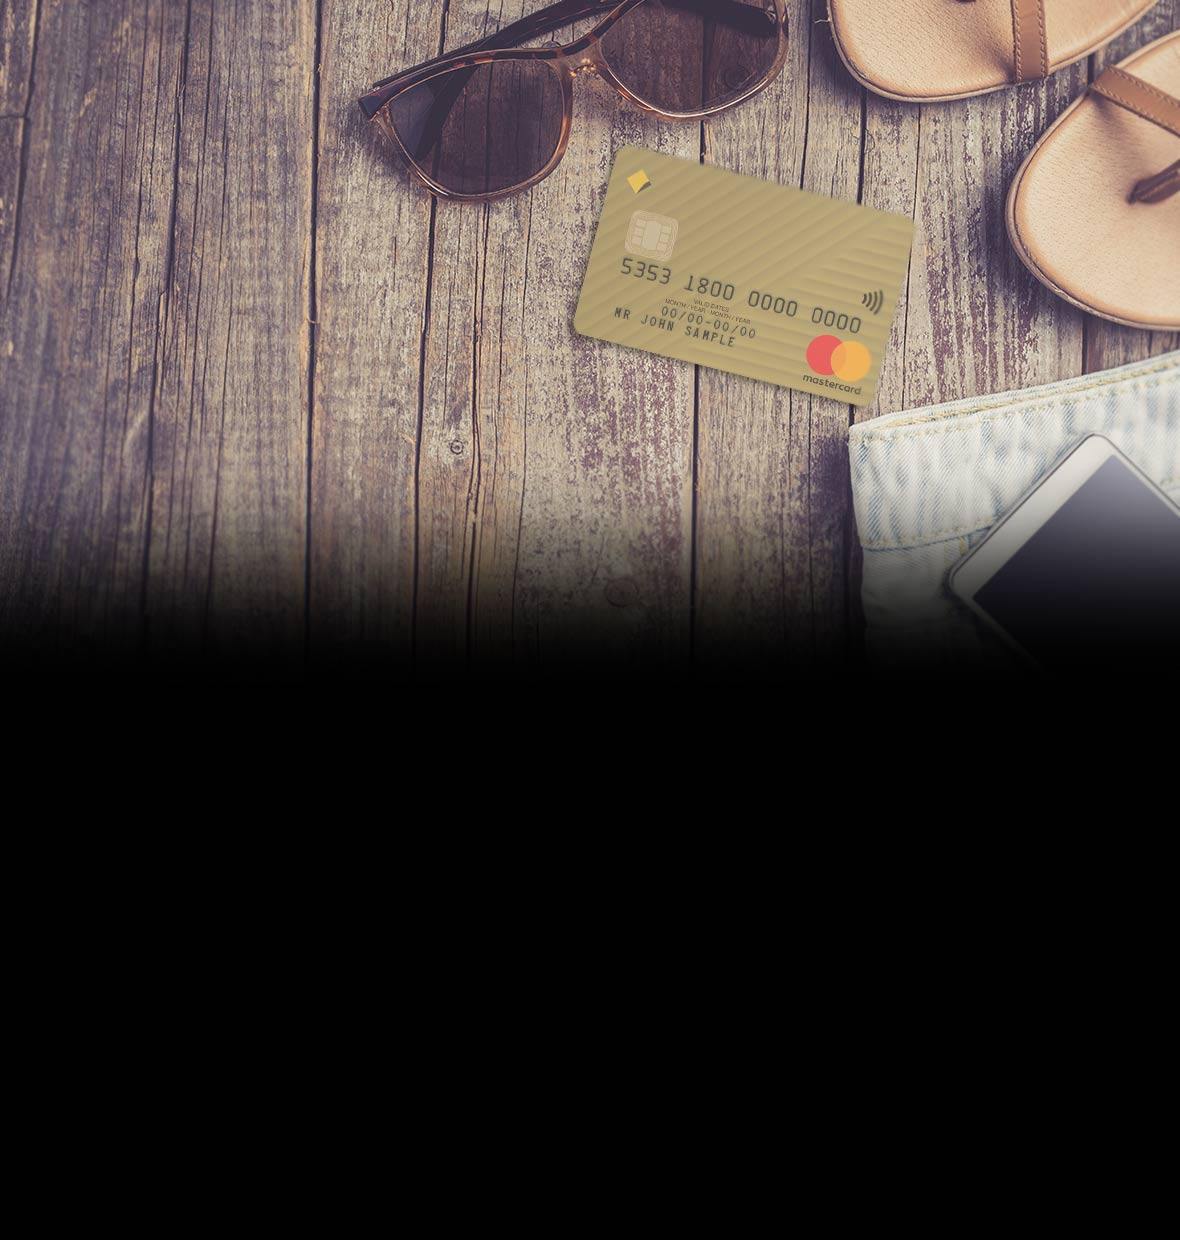 Travel Card Commbank: Low Rate Gold Credit Cards